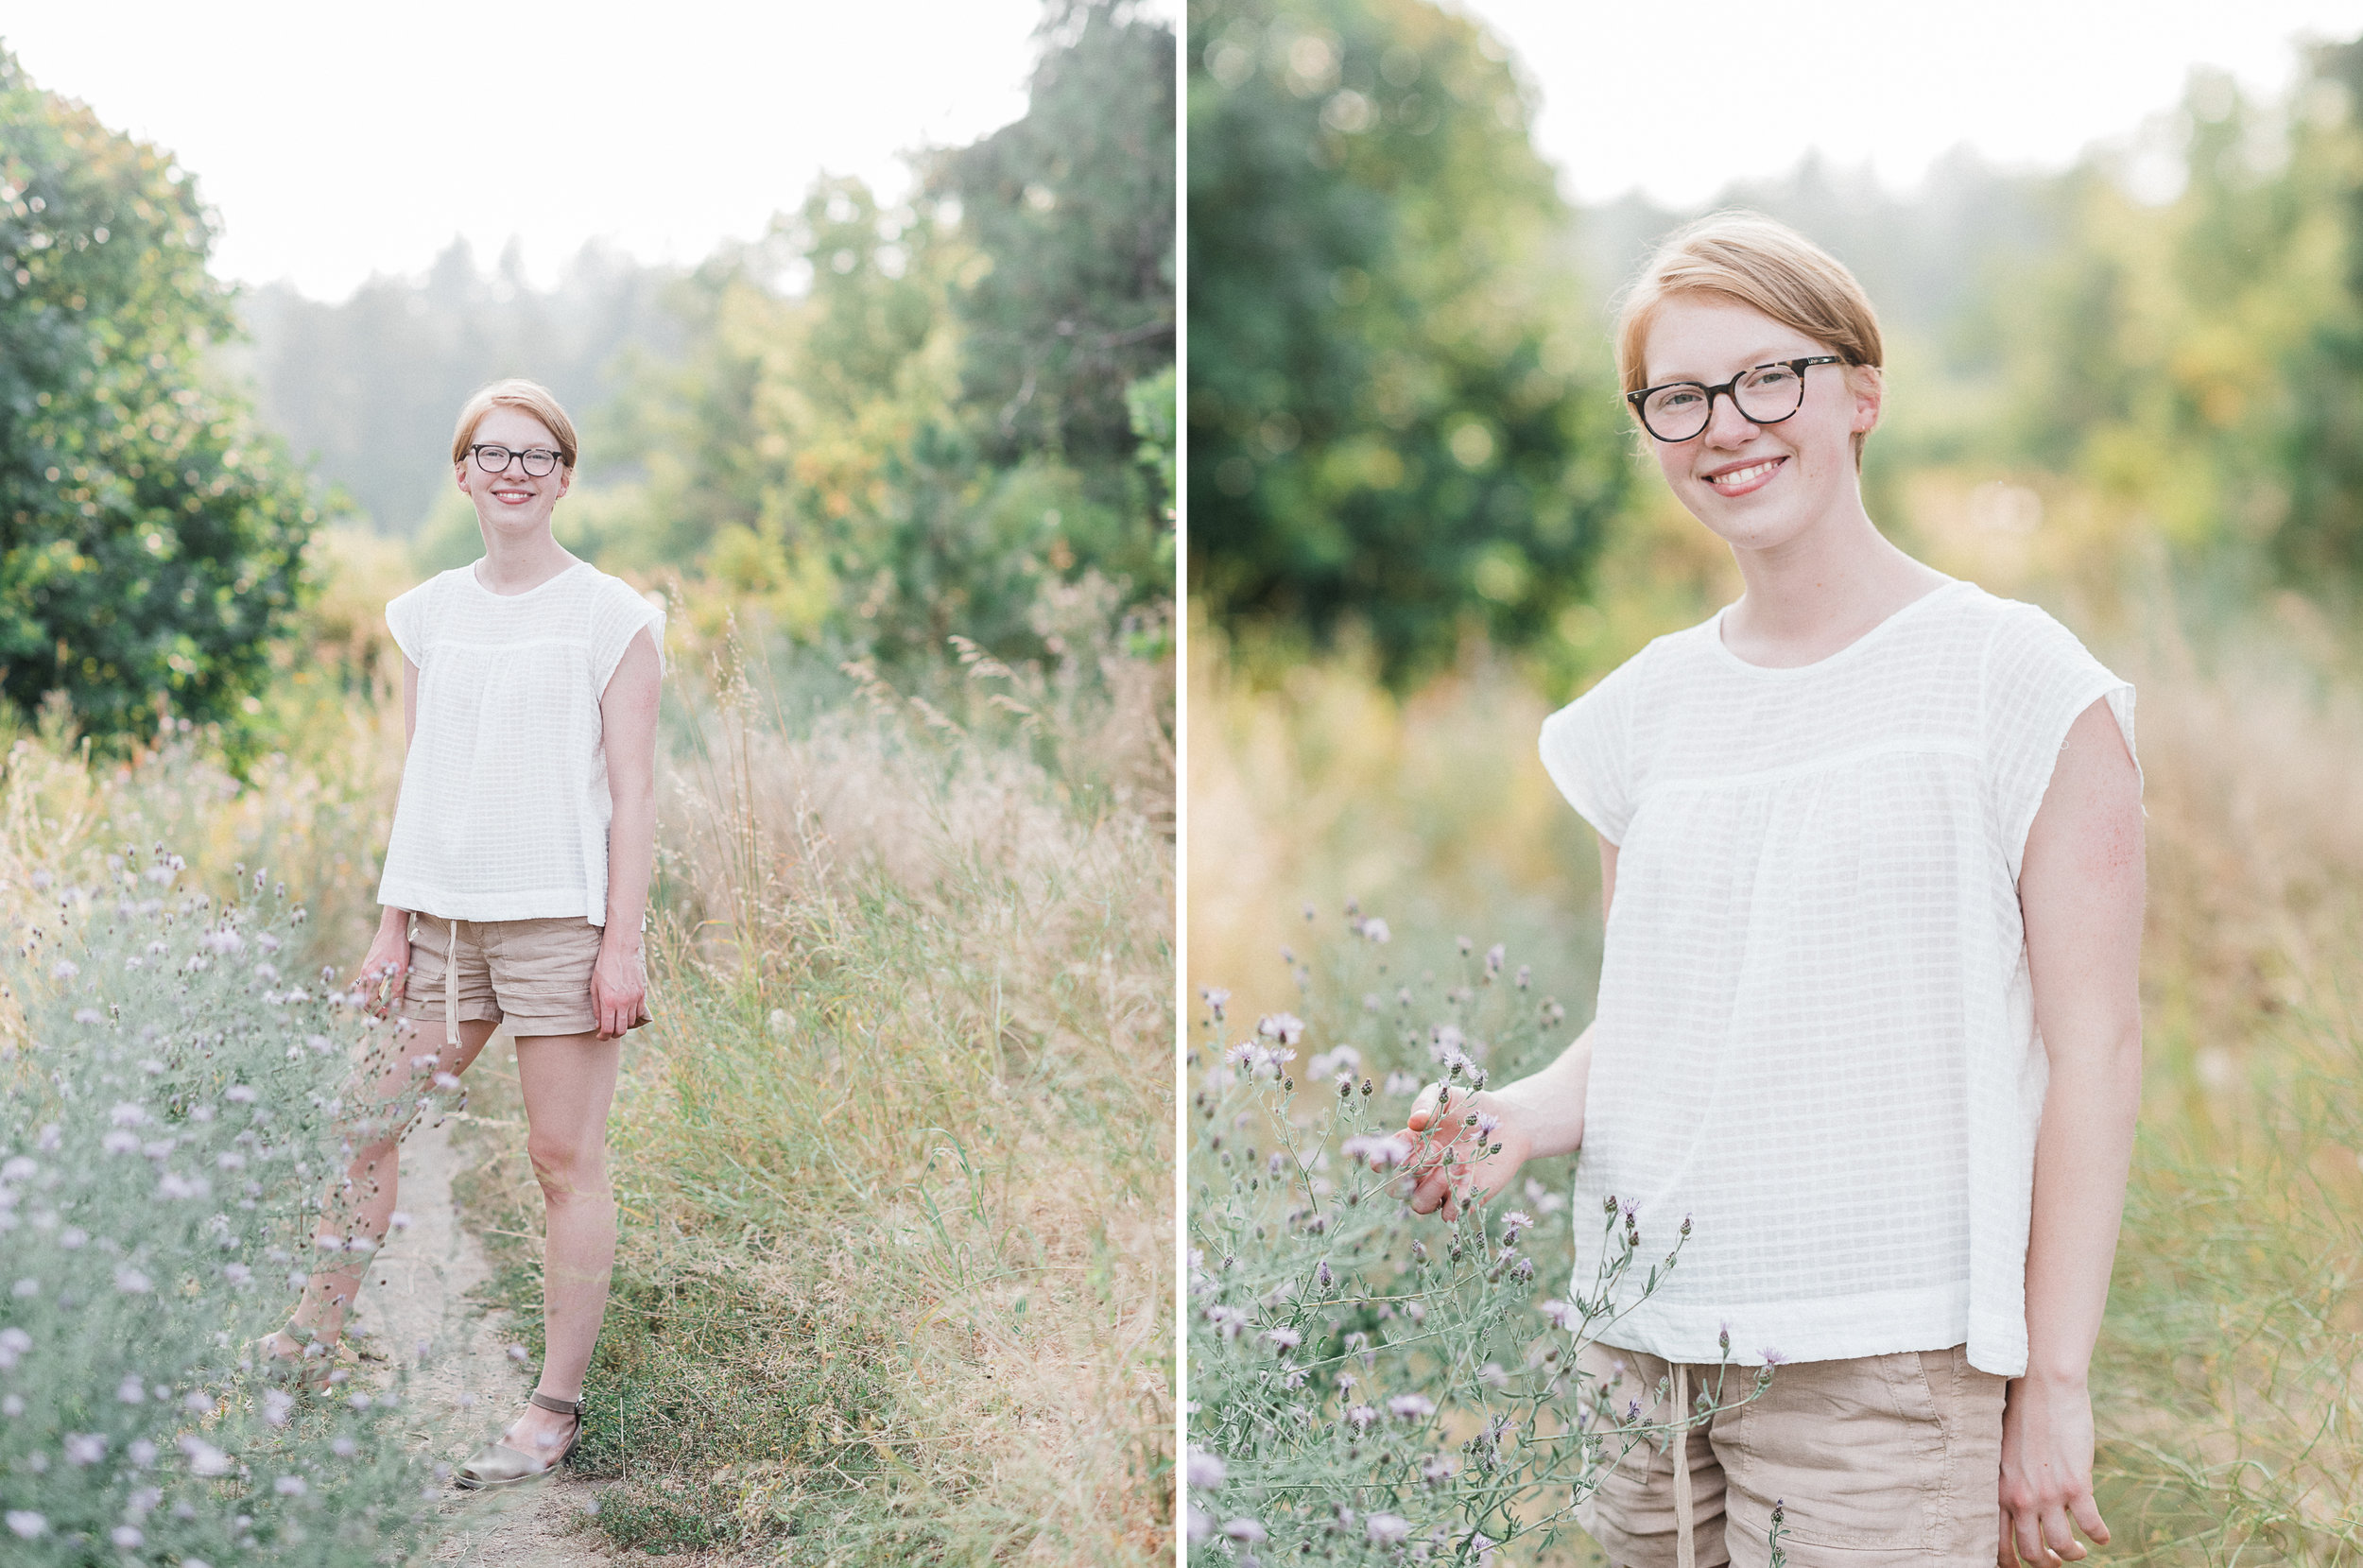 mt_spokane_senior_session4.jpg